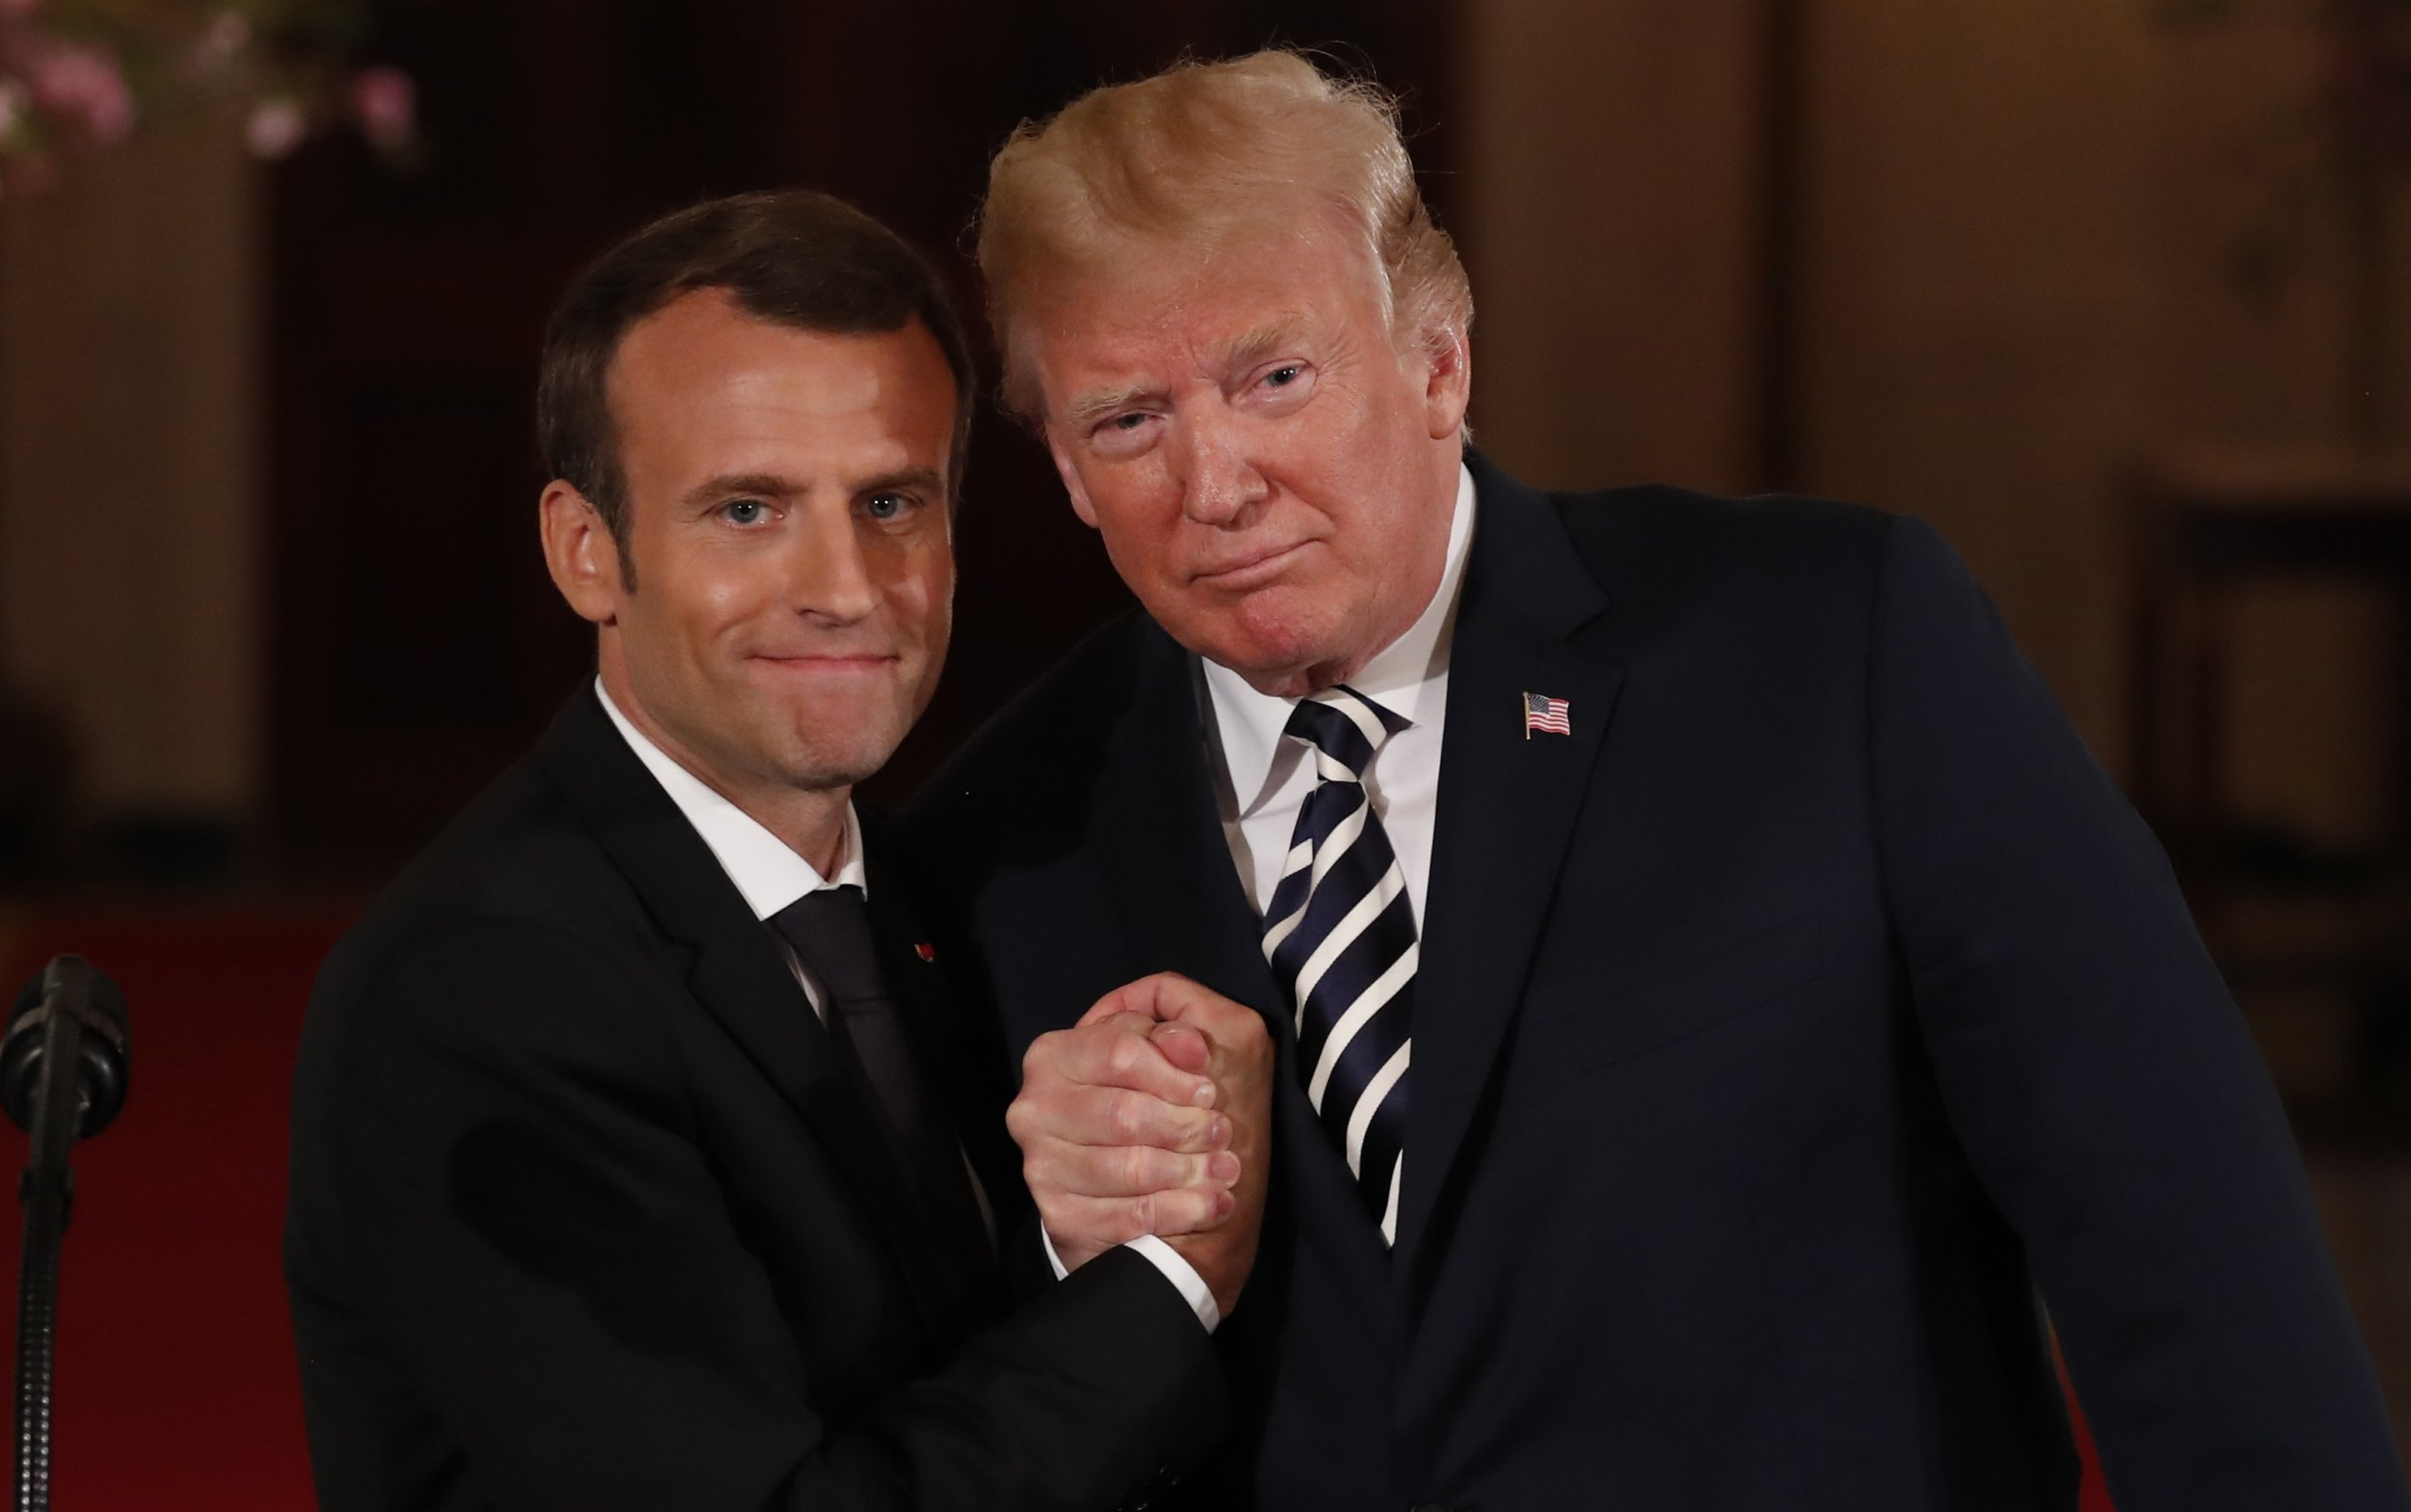 Macron Trump Could Start A War With Iran Nuclear Deal